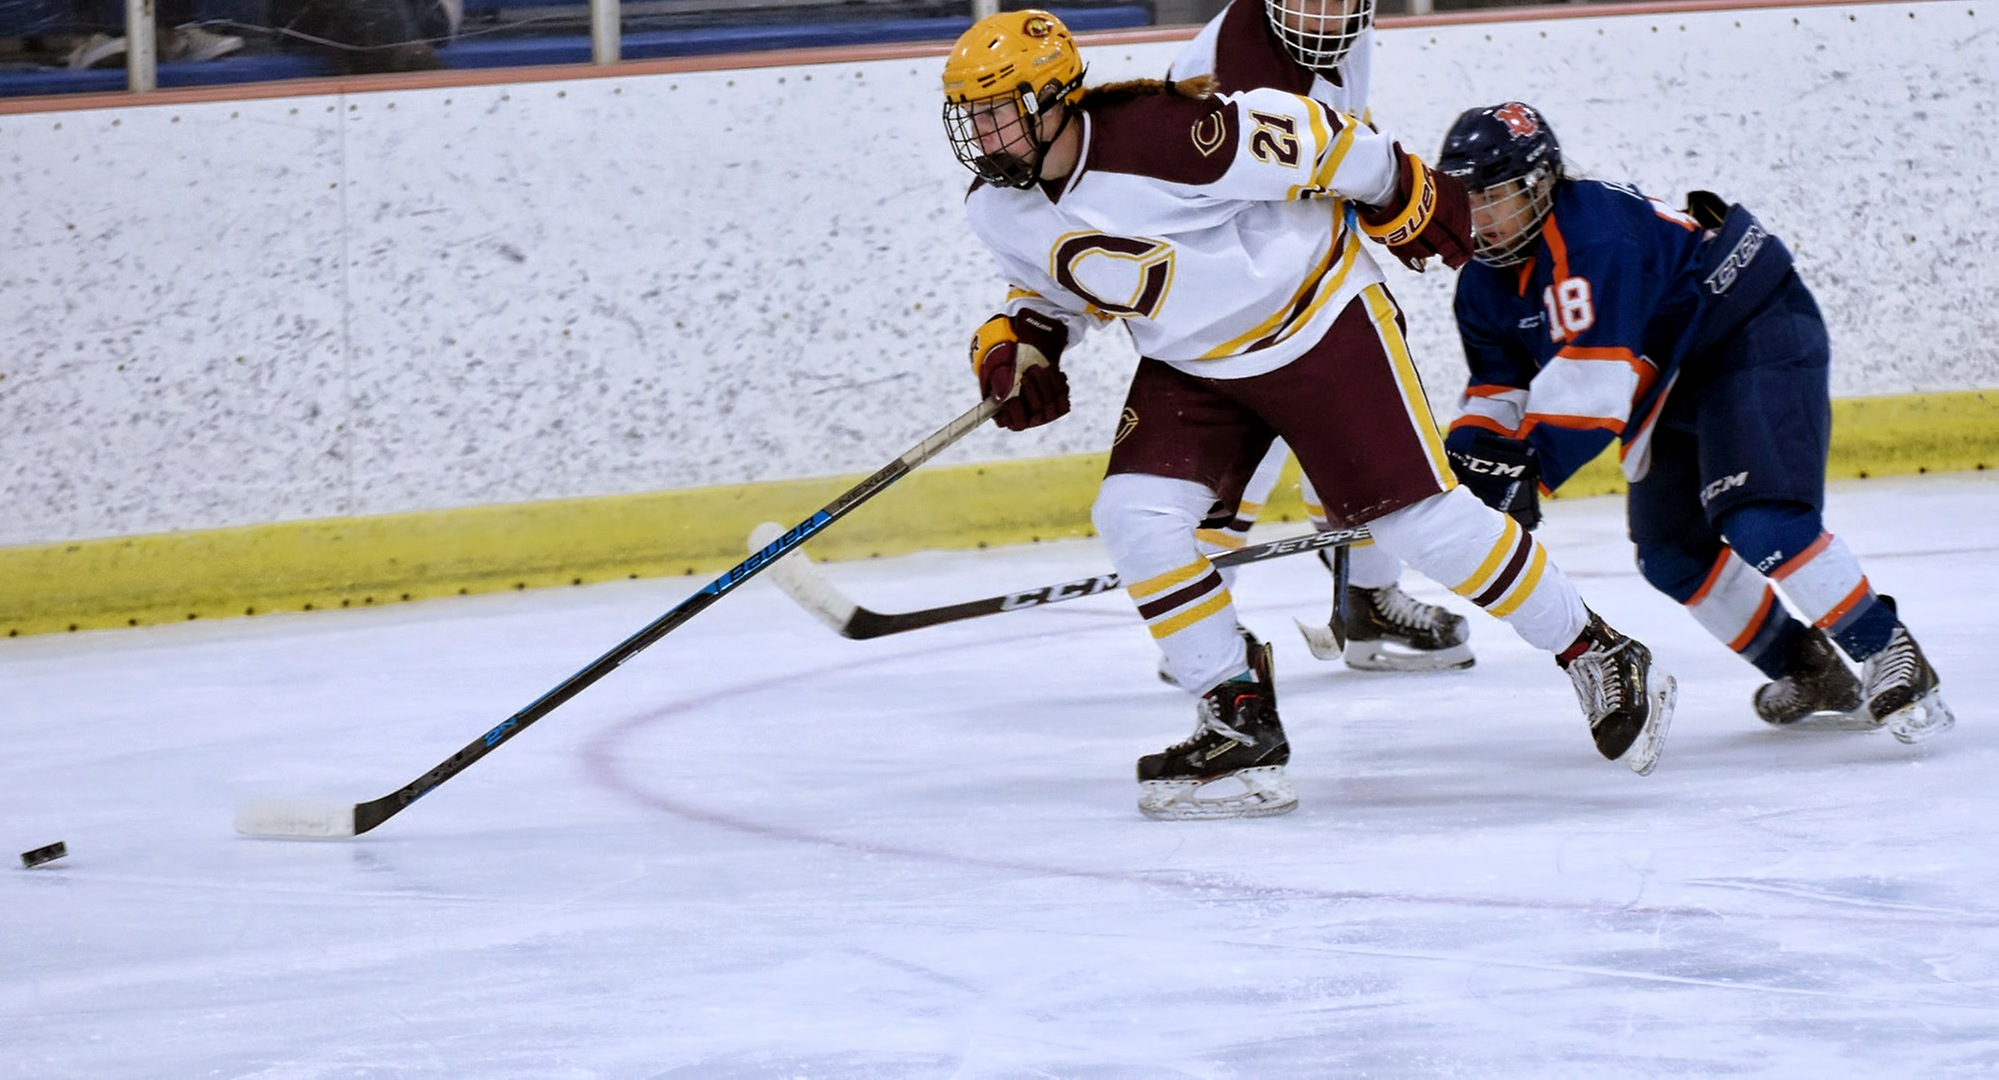 Junior Megan Mohr scored the game-tying goal in the third period of the Cobbers' series opener at St. Mary's.